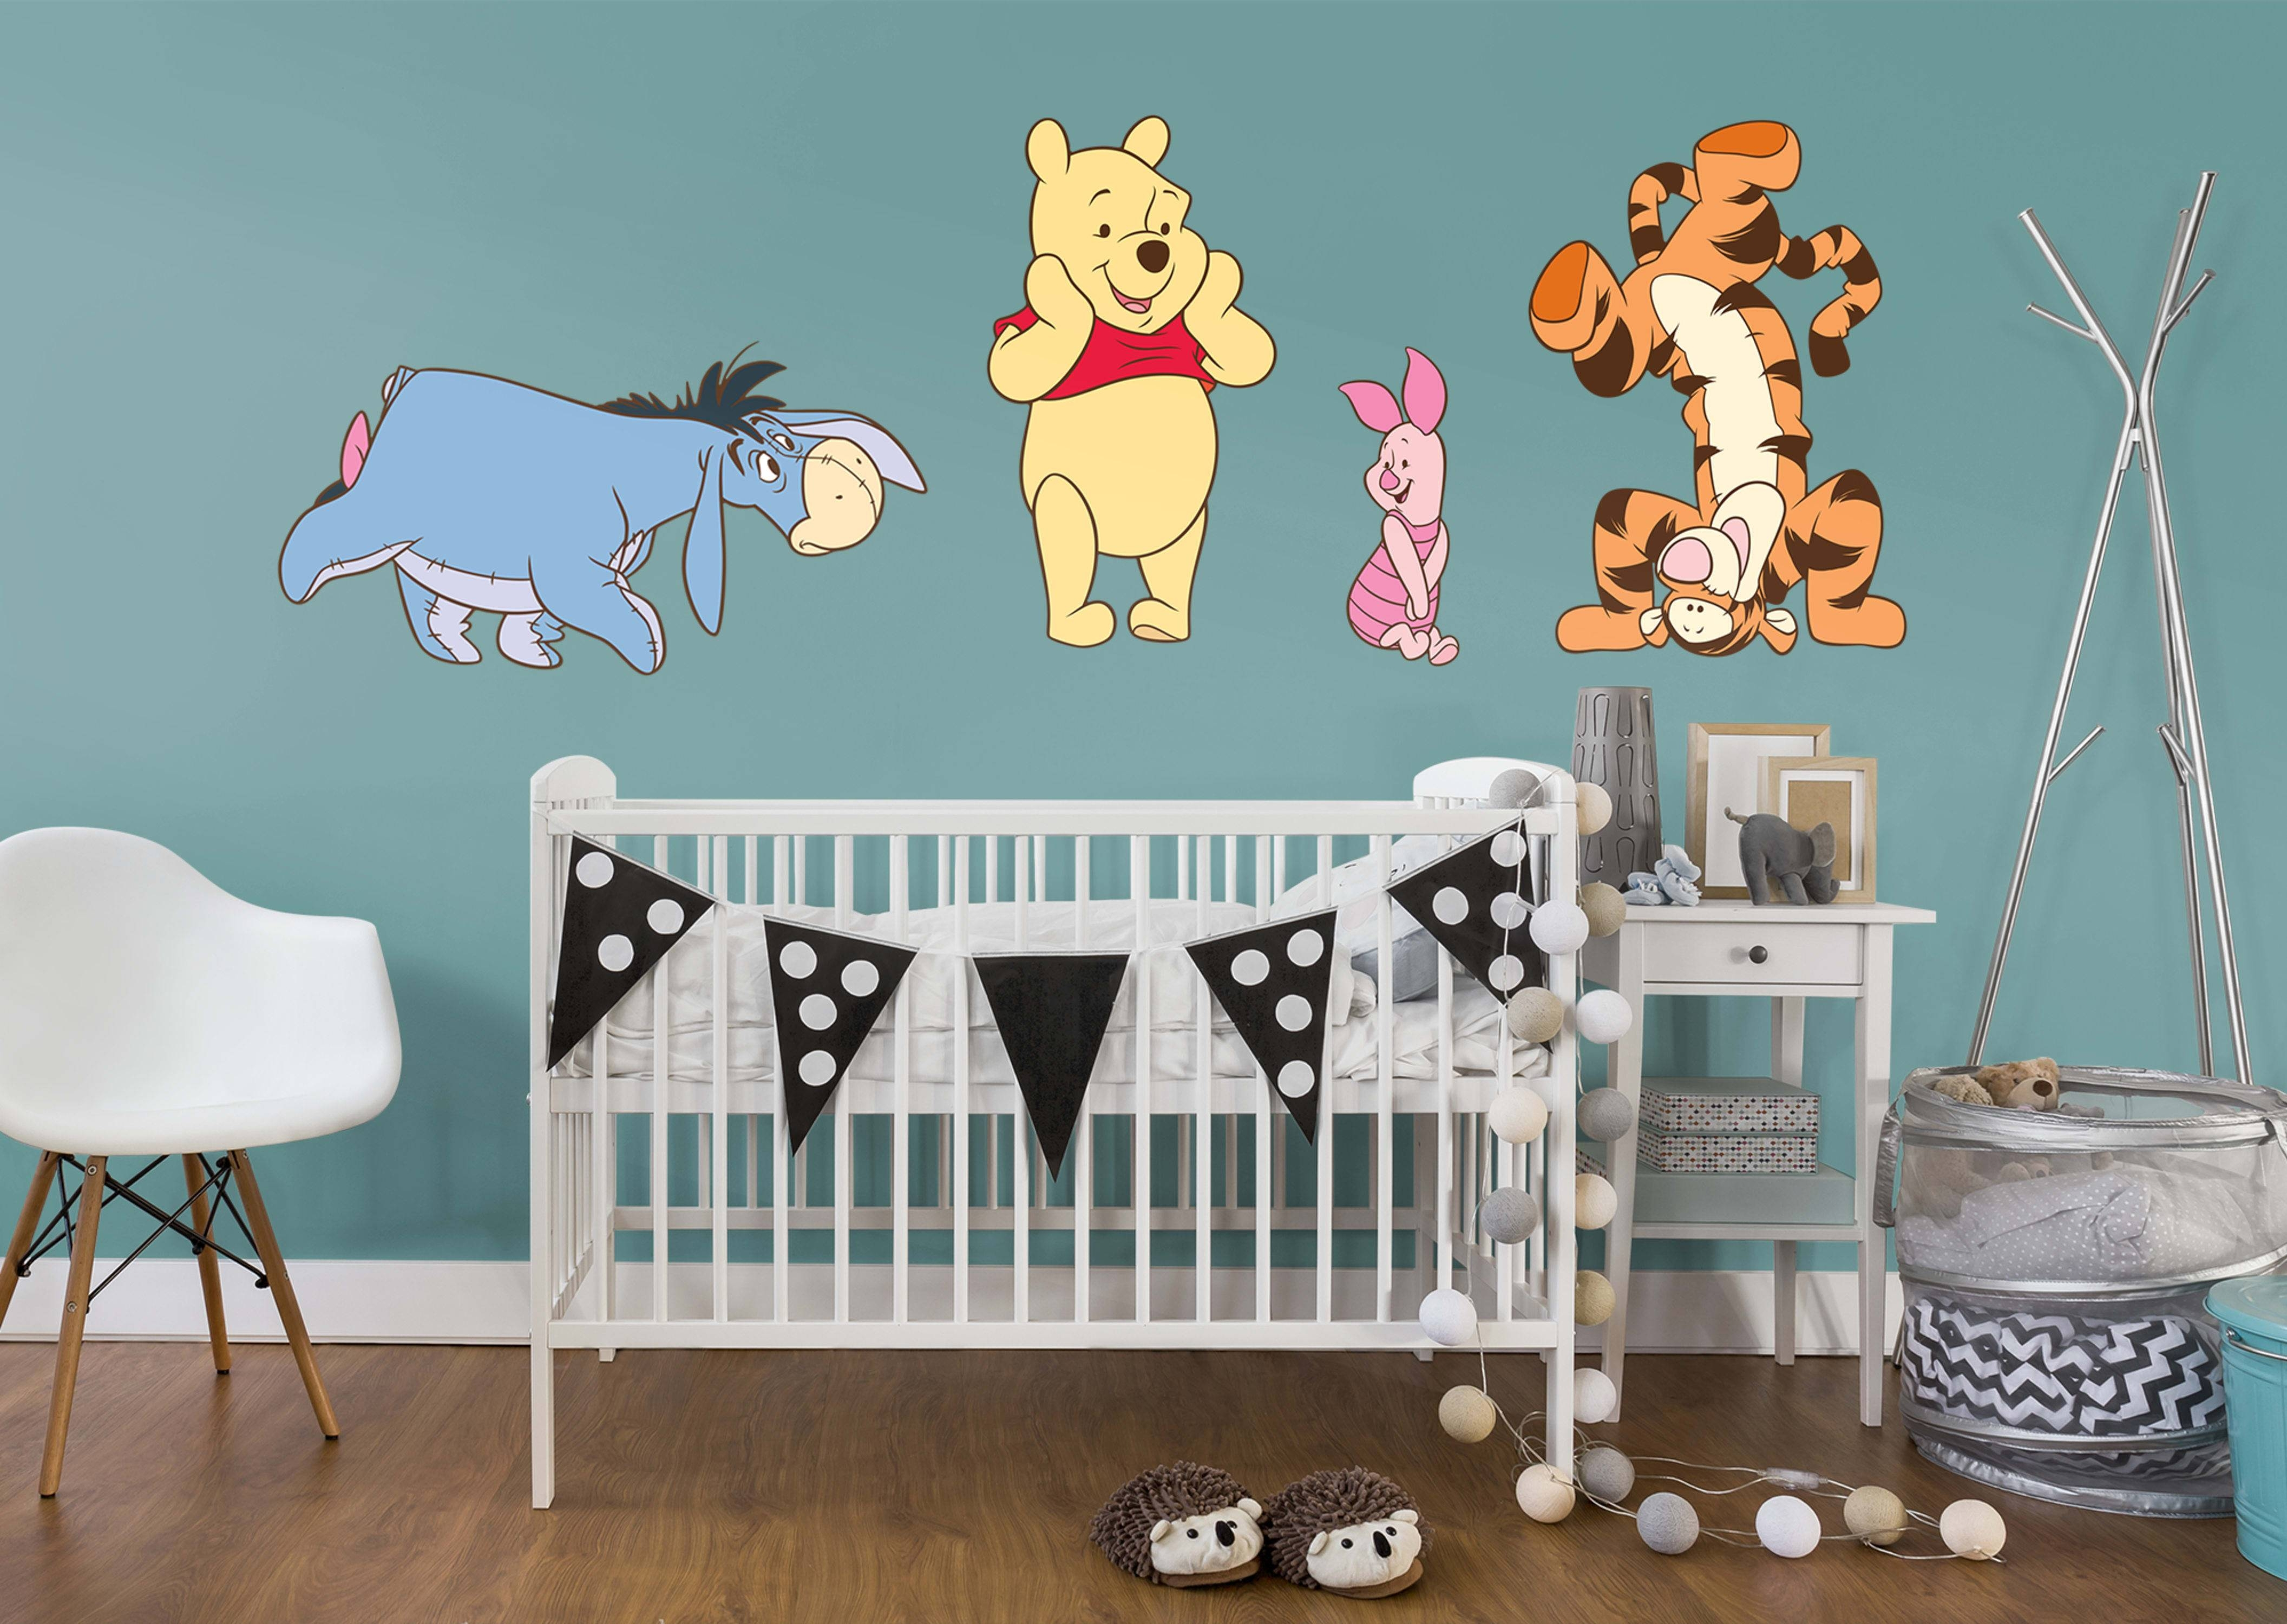 Winnie The Pooh Wall Stickers Image Collections – Home Wall With Regard To Most Popular Winnie The Pooh Wall Art (View 18 of 20)